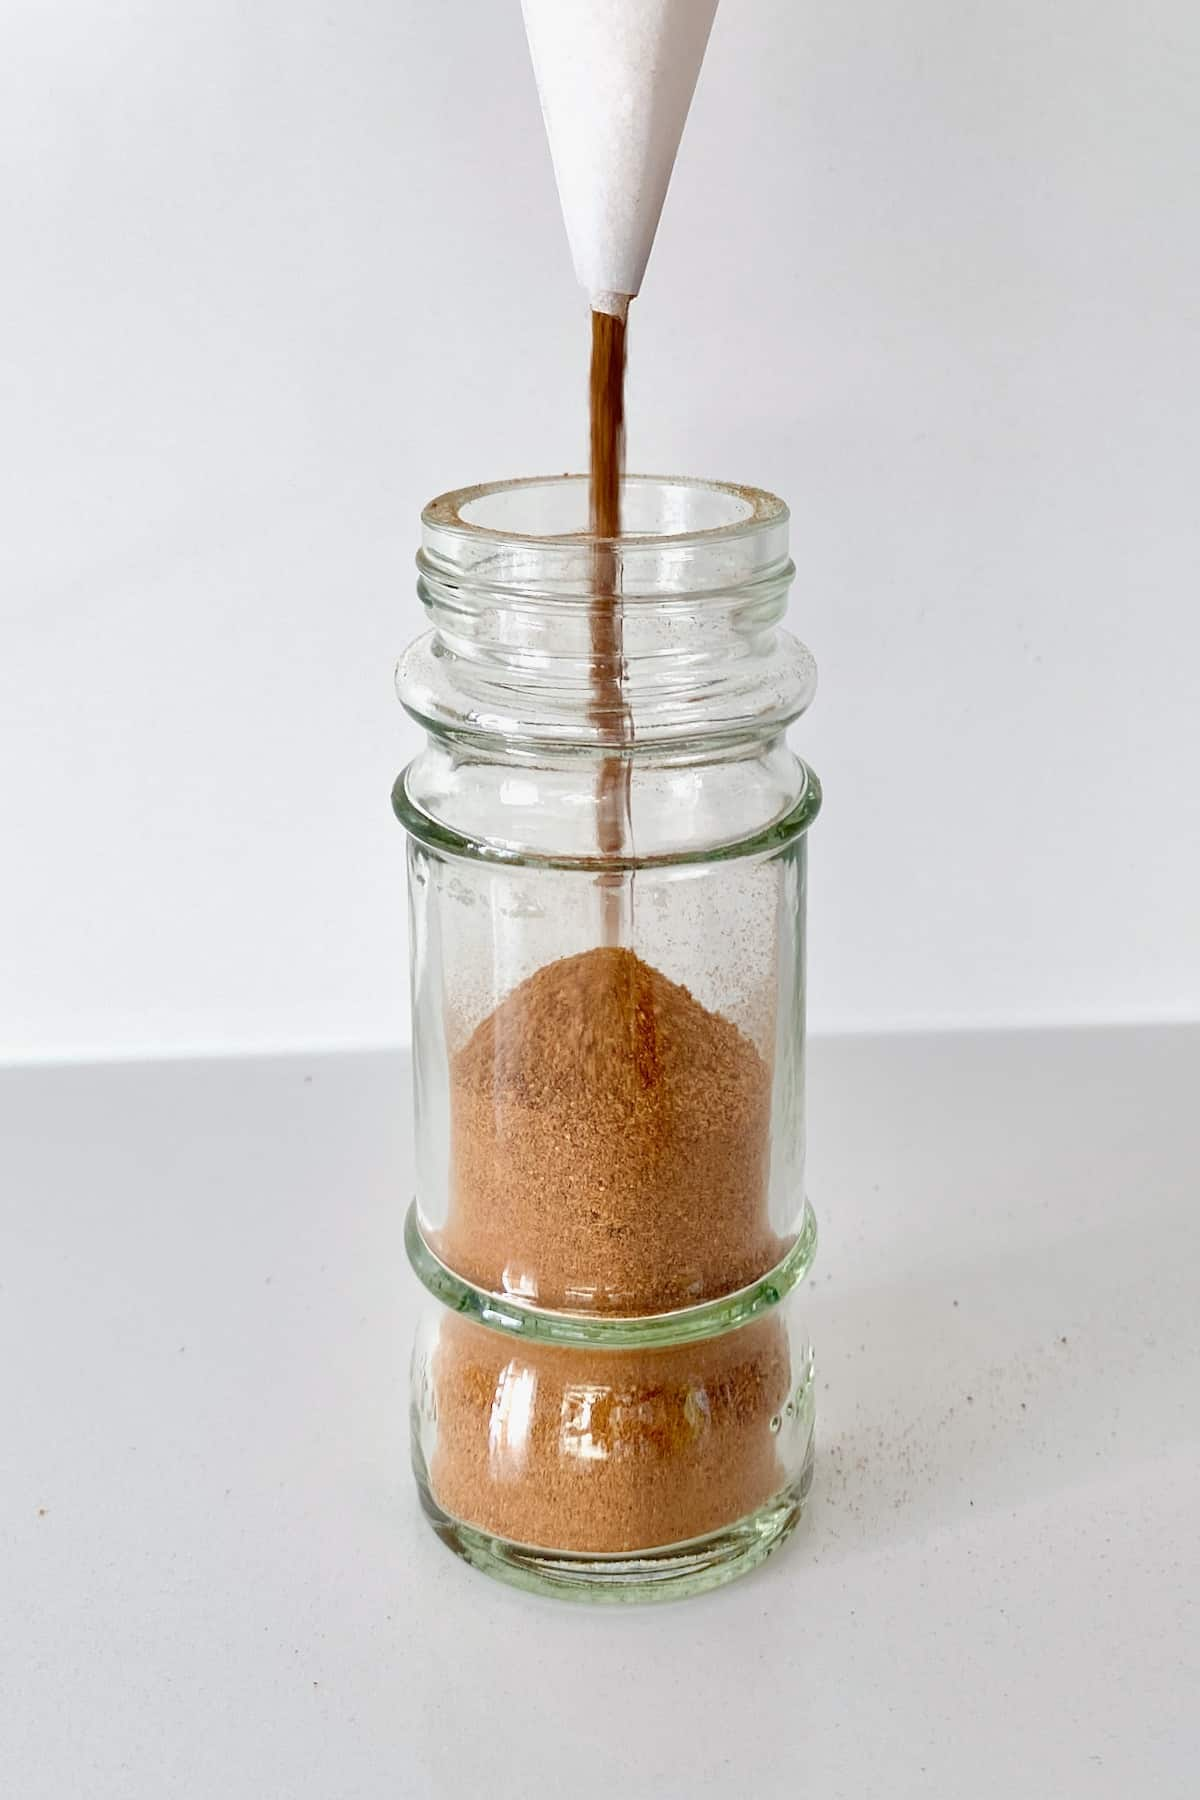 Filling a spice jar with homemade pumpkin pie spice